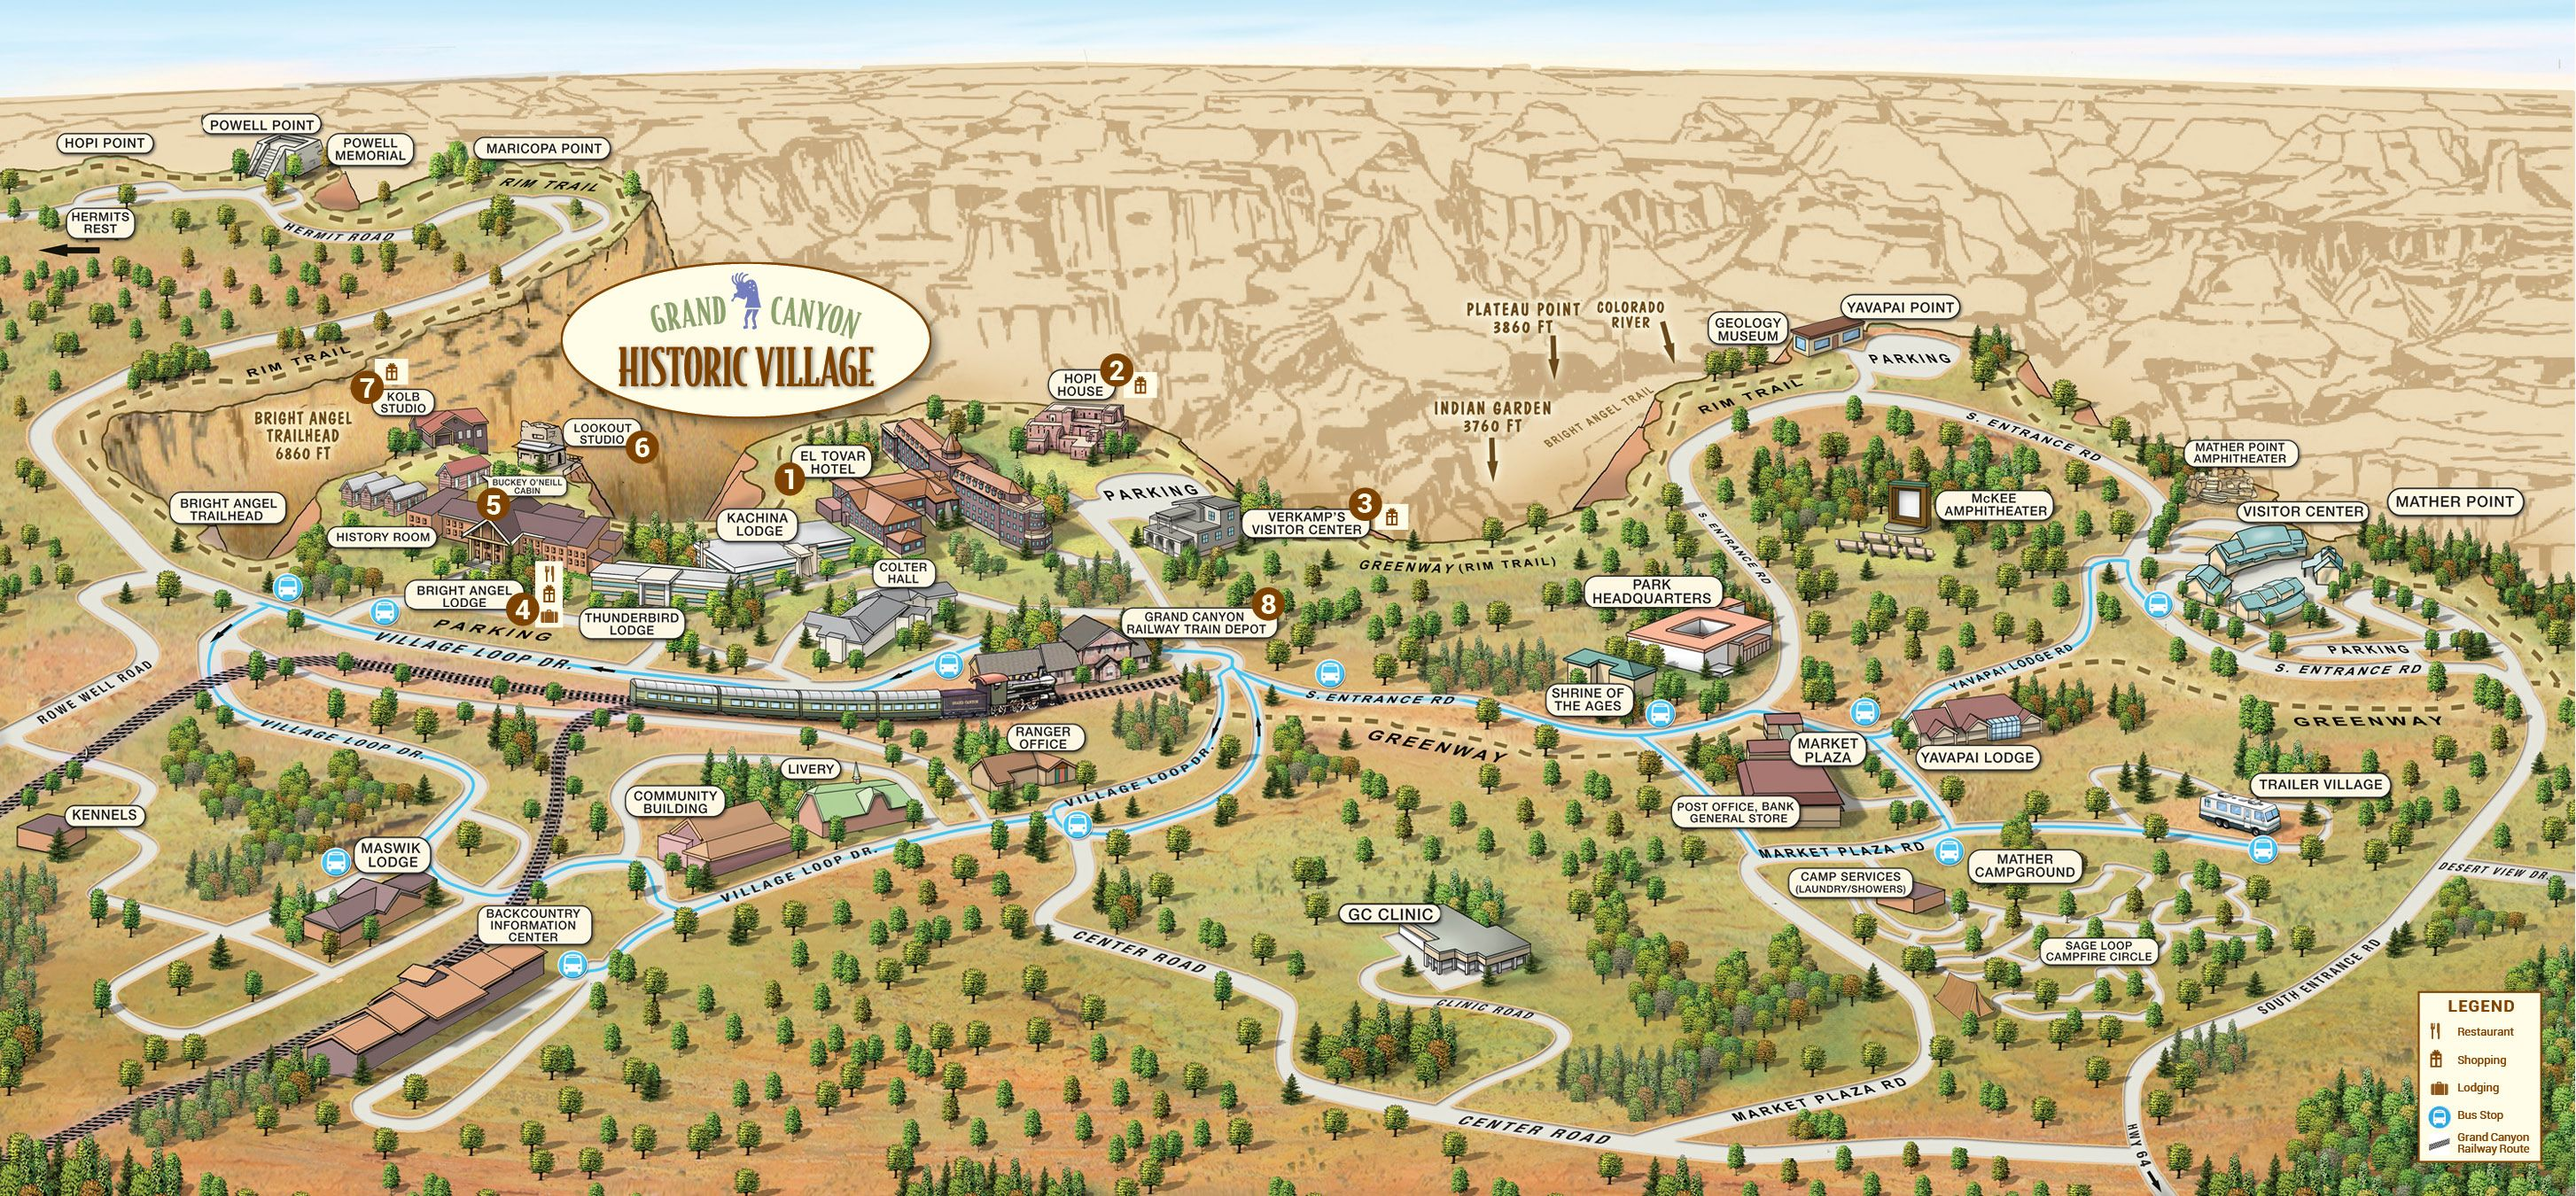 Grand Canyon Activities and Fees | Grand Canyon Village: | THE GREAT ...